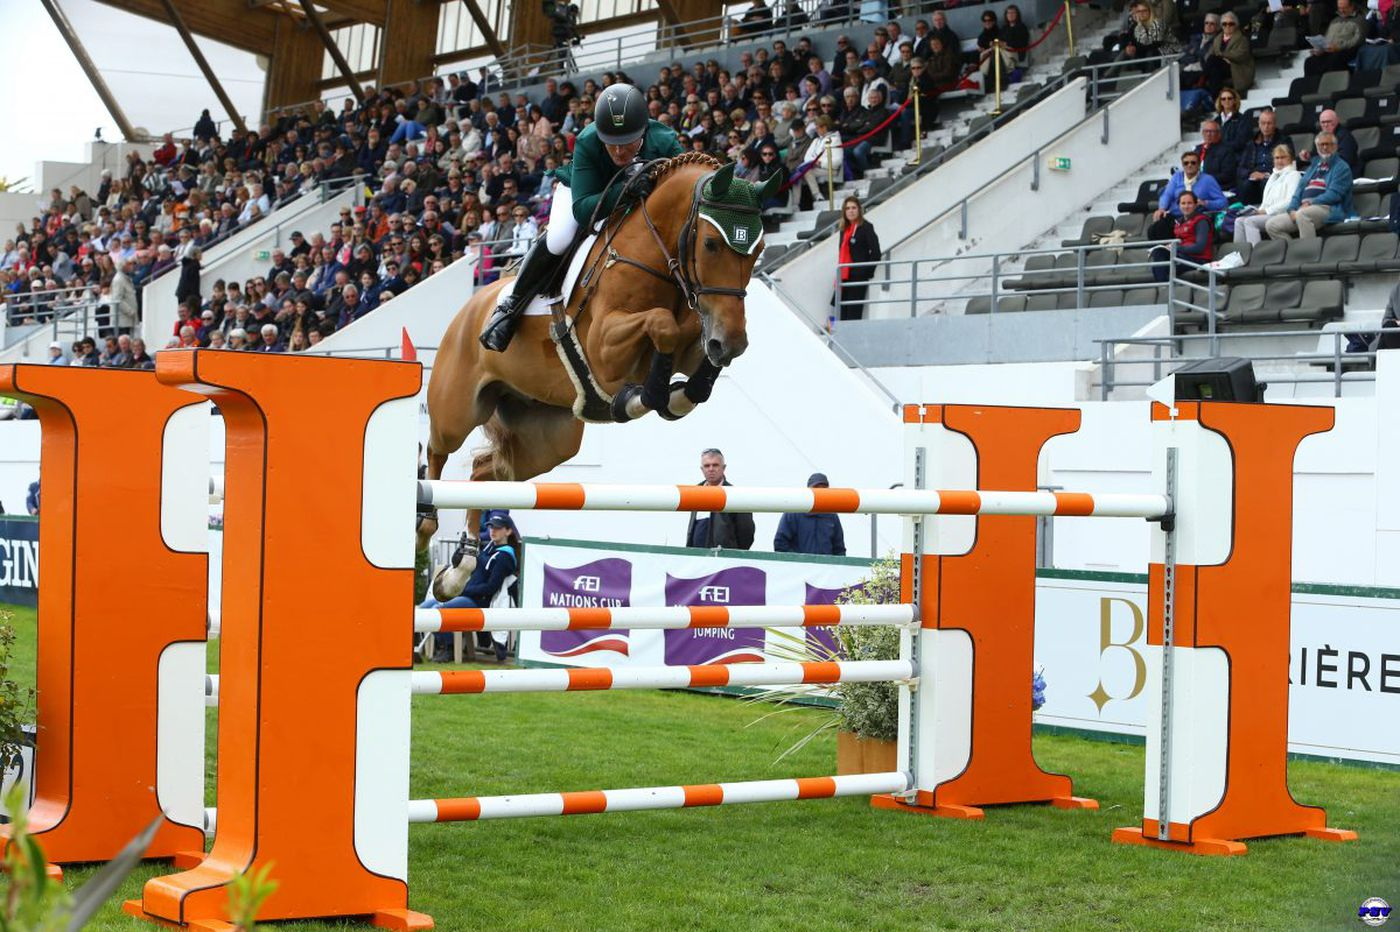 Gwynedd Valley's Kevin Babington seeking 3rd grand prix title at Devon Horse Show